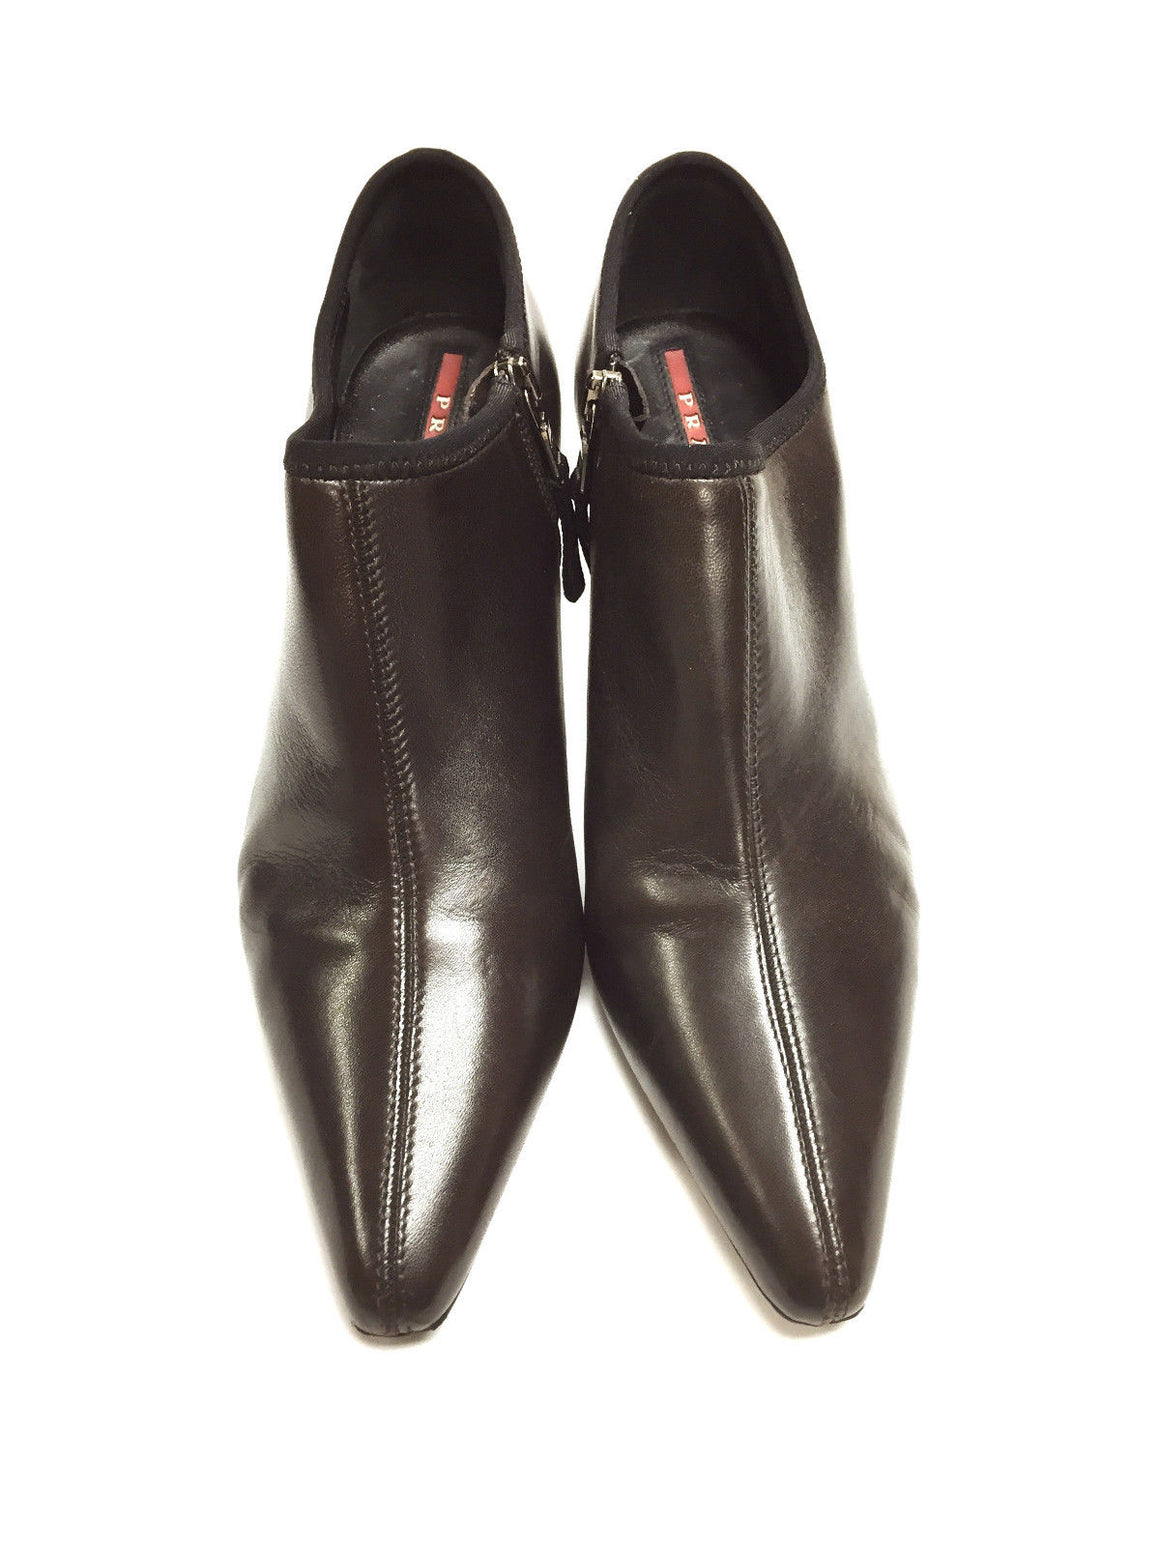 bisbiz.com PRADA Brown Leather Black Rubber Soles Ankle Boots/Booties Size: 7.5 - Bis Luxury Resale